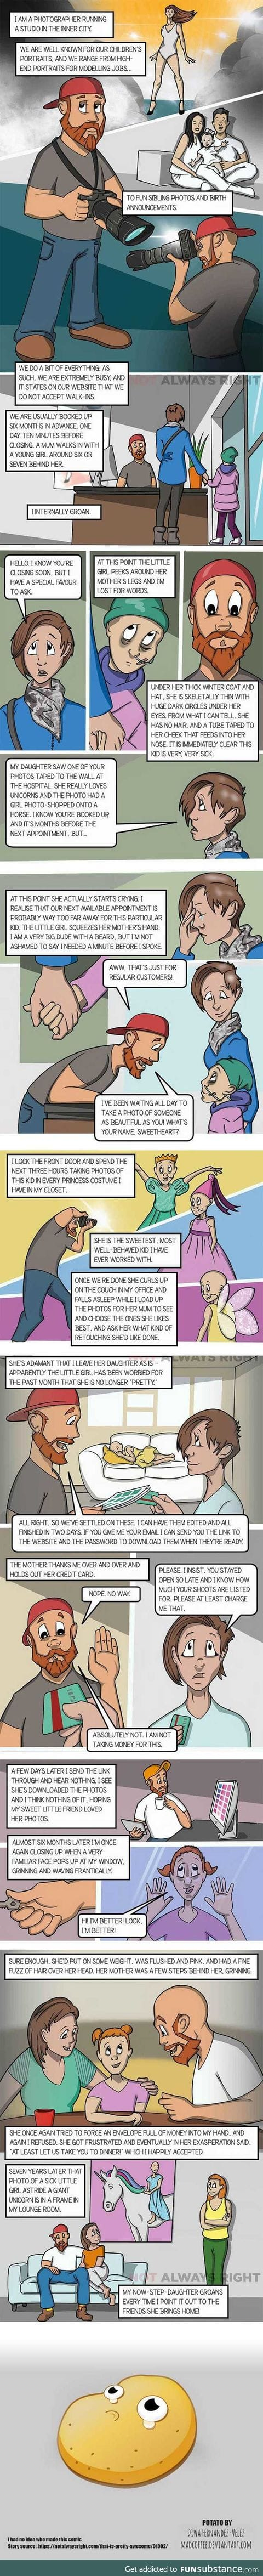 That photographer thing I posted a while back? I found someone made it into a comic strip.